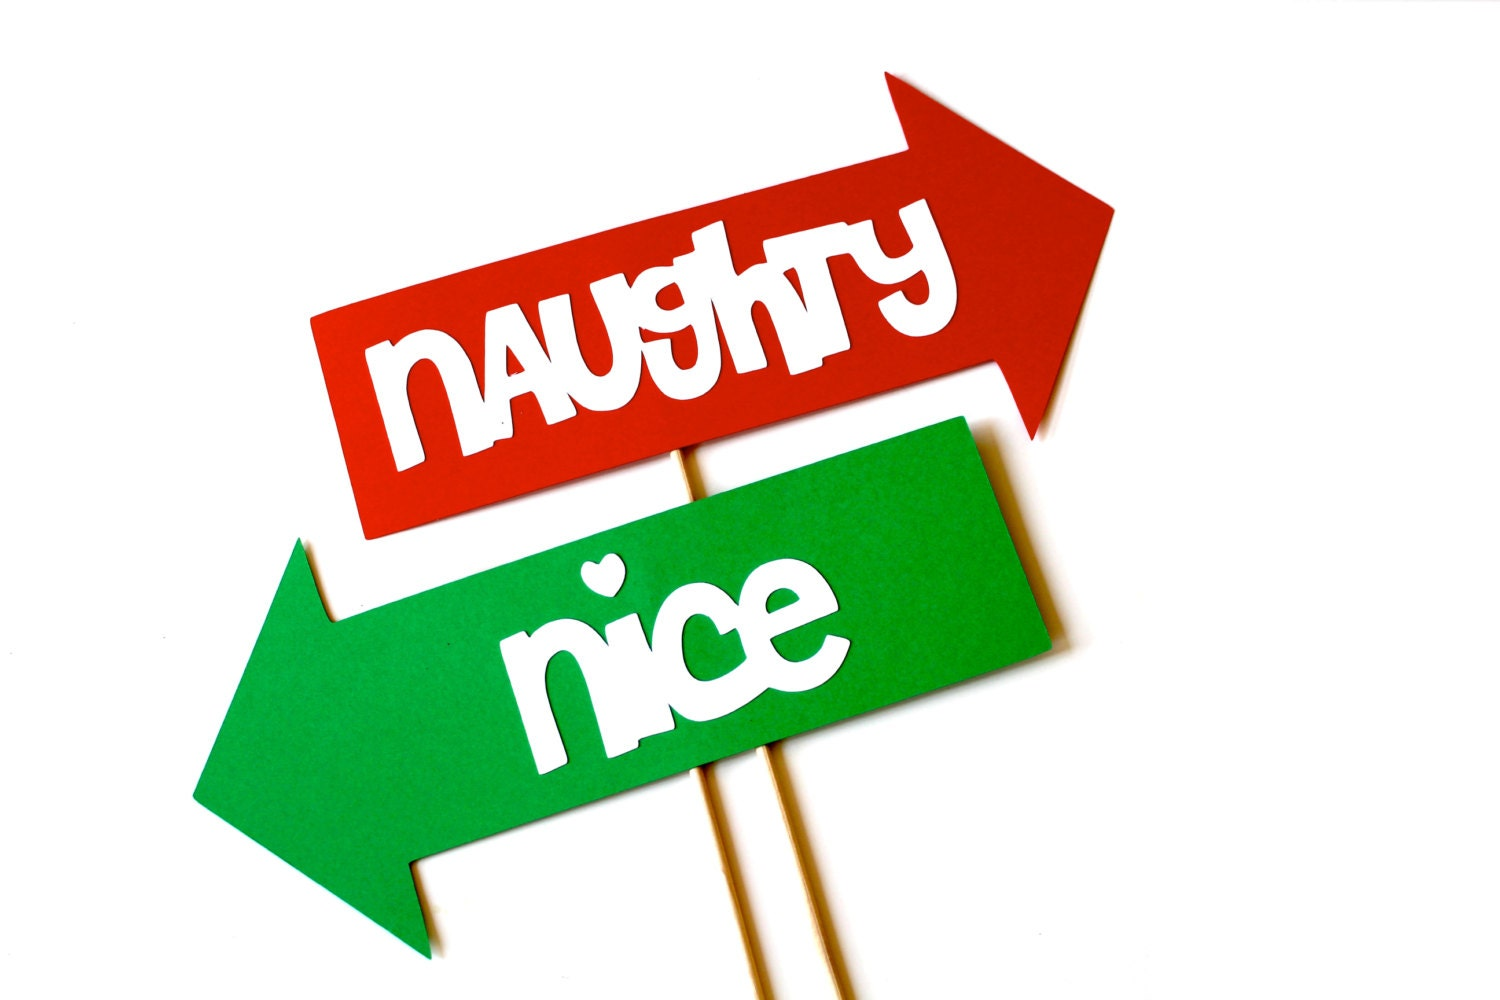 Naughty or Nice | Euro Palace Casino Blog - Part 2